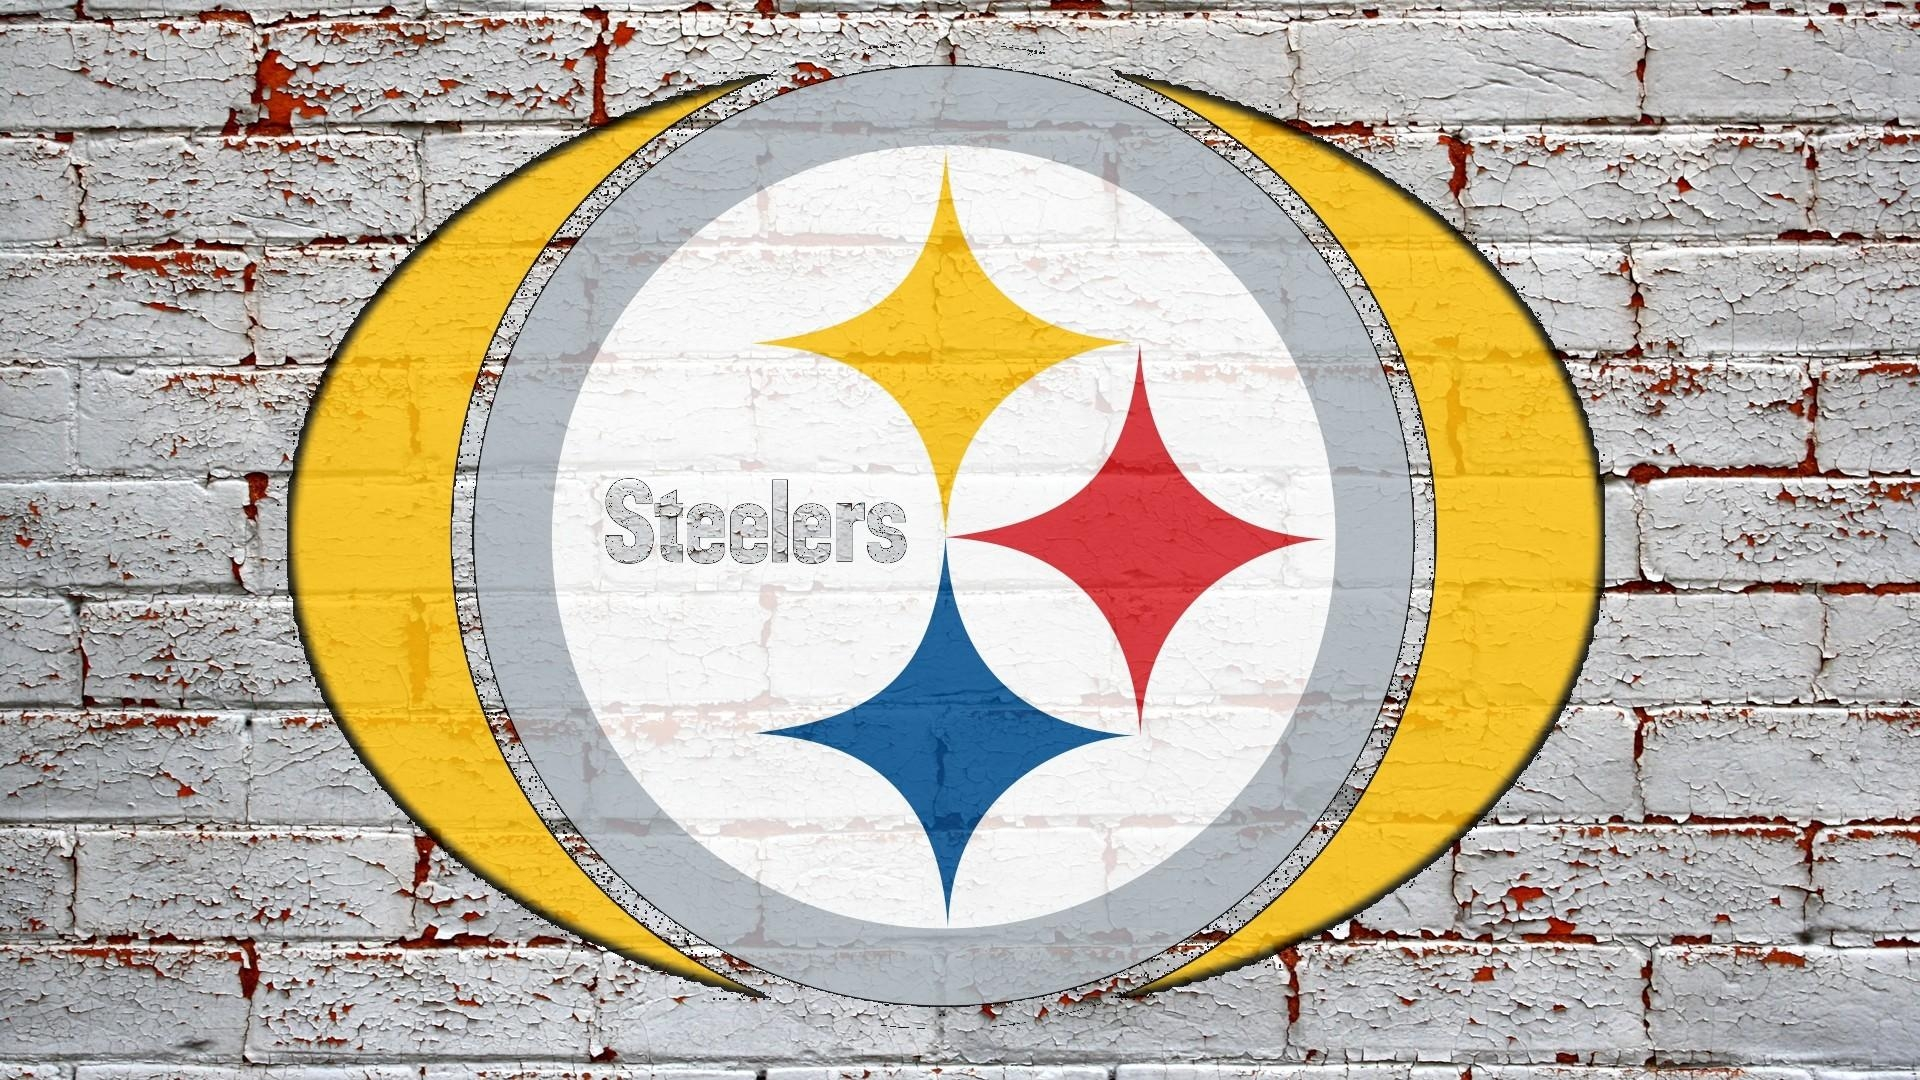 Nfl Pittsburgh Steelers Logo On Grey Brick Wall 1920X1080 Hd Nfl Pertaining To Steelers Wall Art (View 20 of 20)